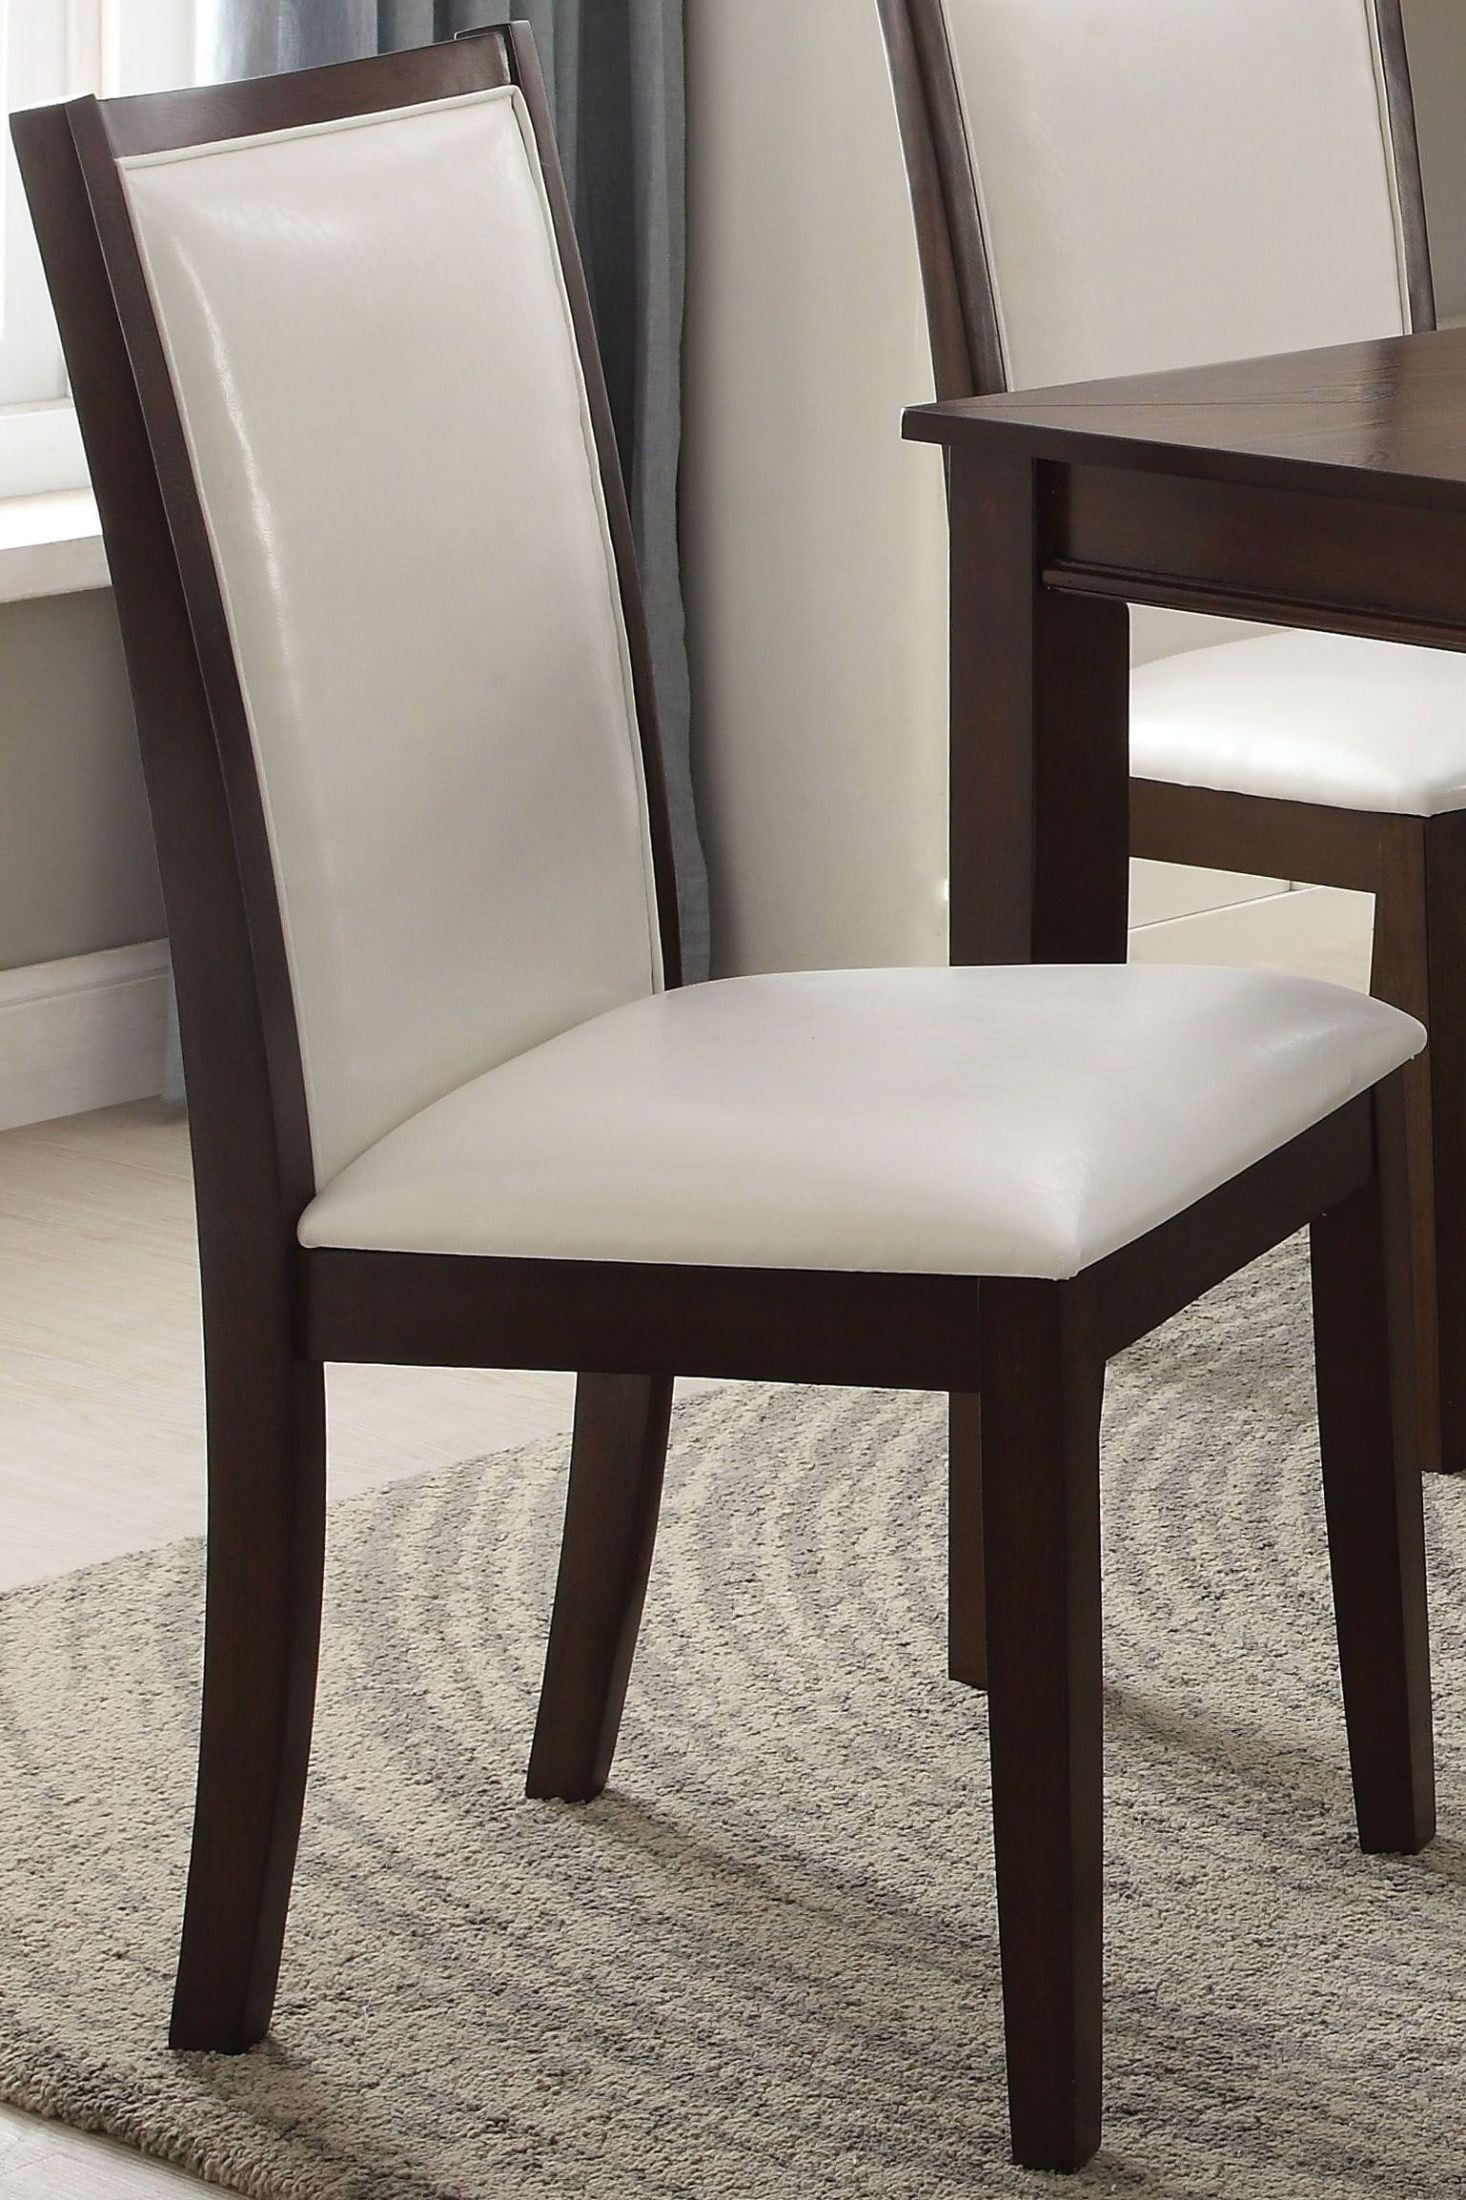 Eastfall White Side Chair Set of 2 from Acme  Coleman